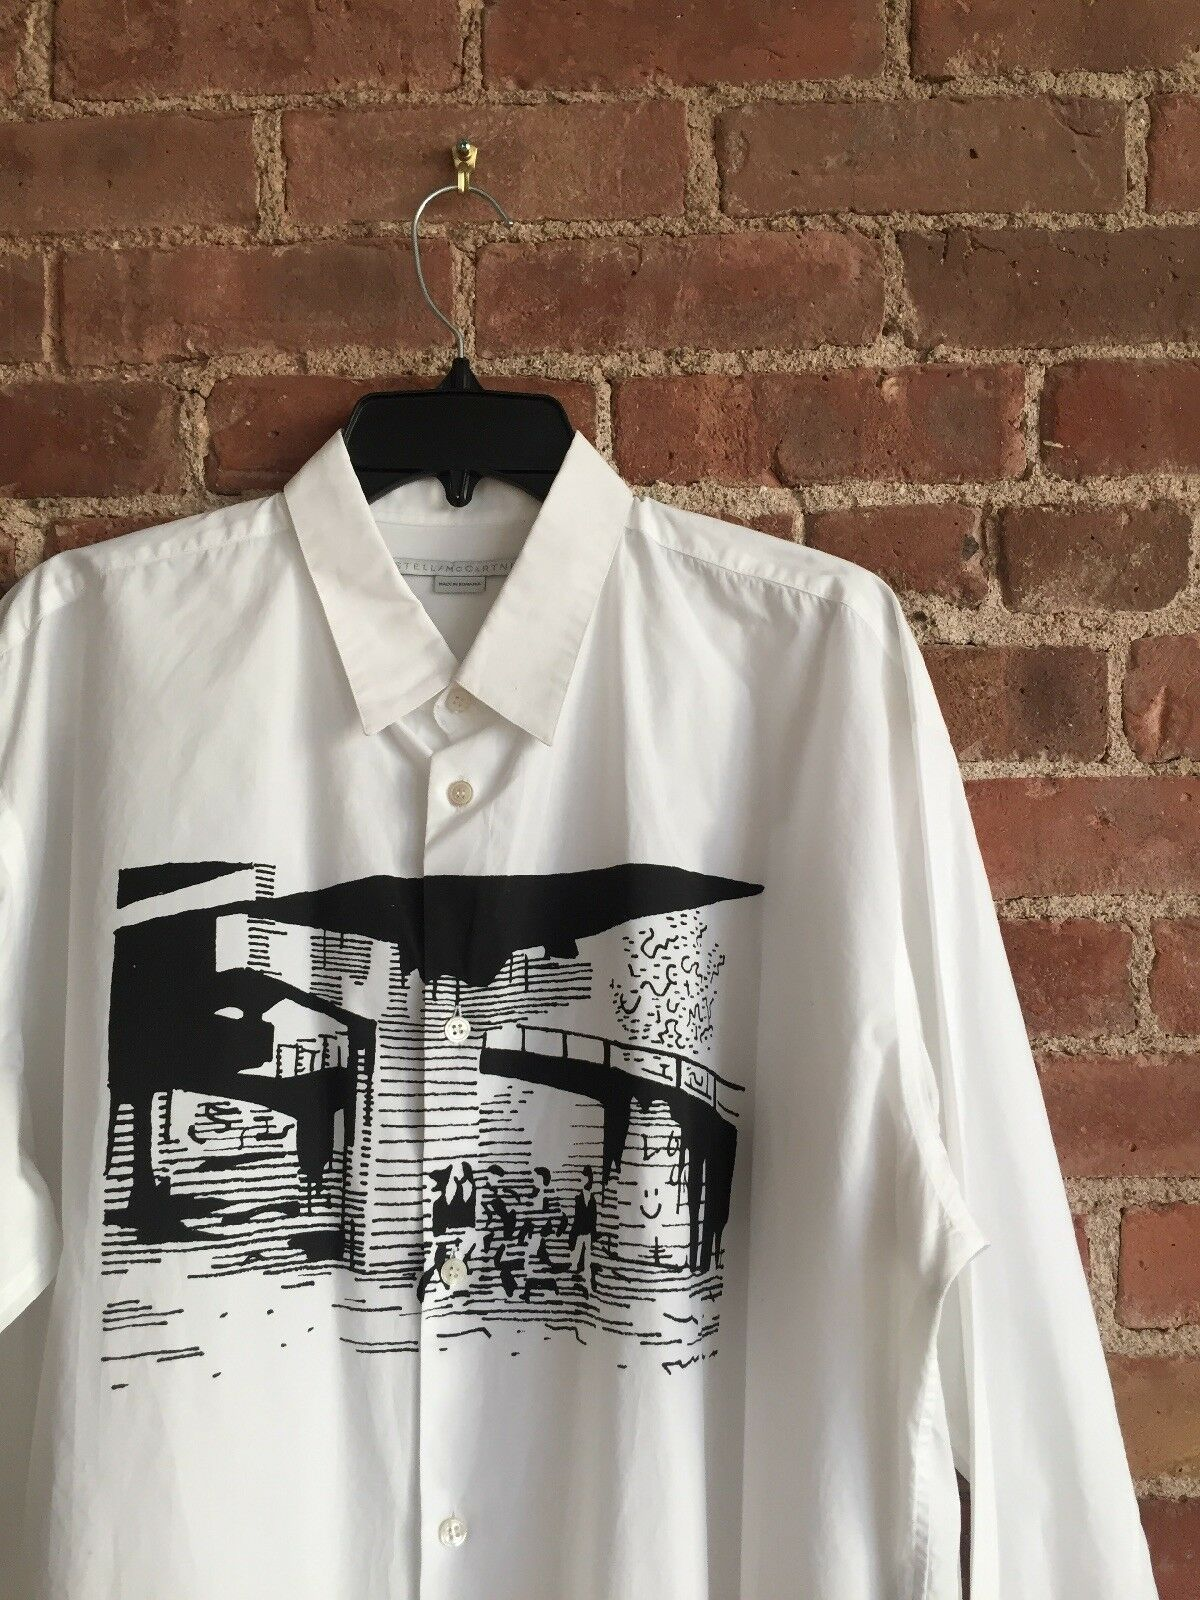 Stella McCartney Men's Shirt, Sz 43 XL